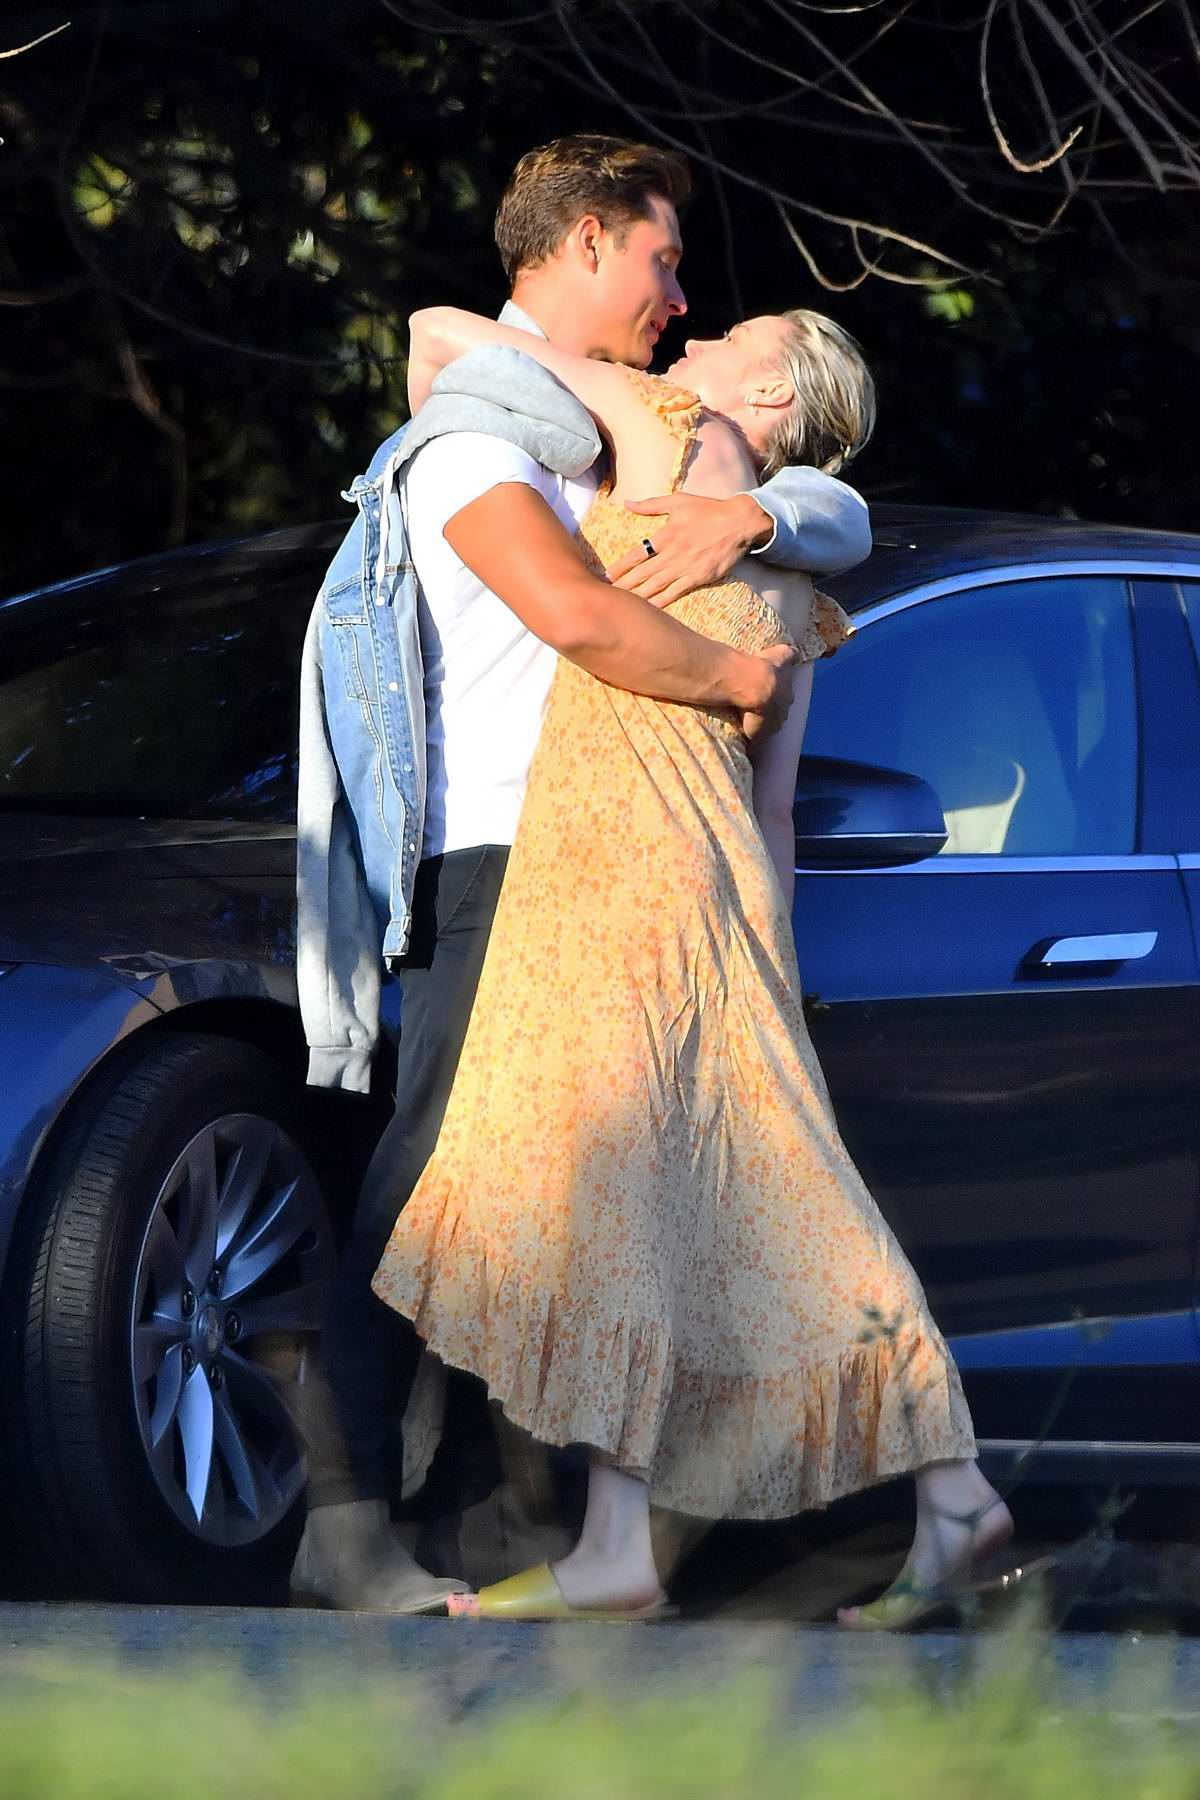 Brie Larson packs on some serious PDA with Elijah Allan-Blitz while shopping groceries in Calabasas, California